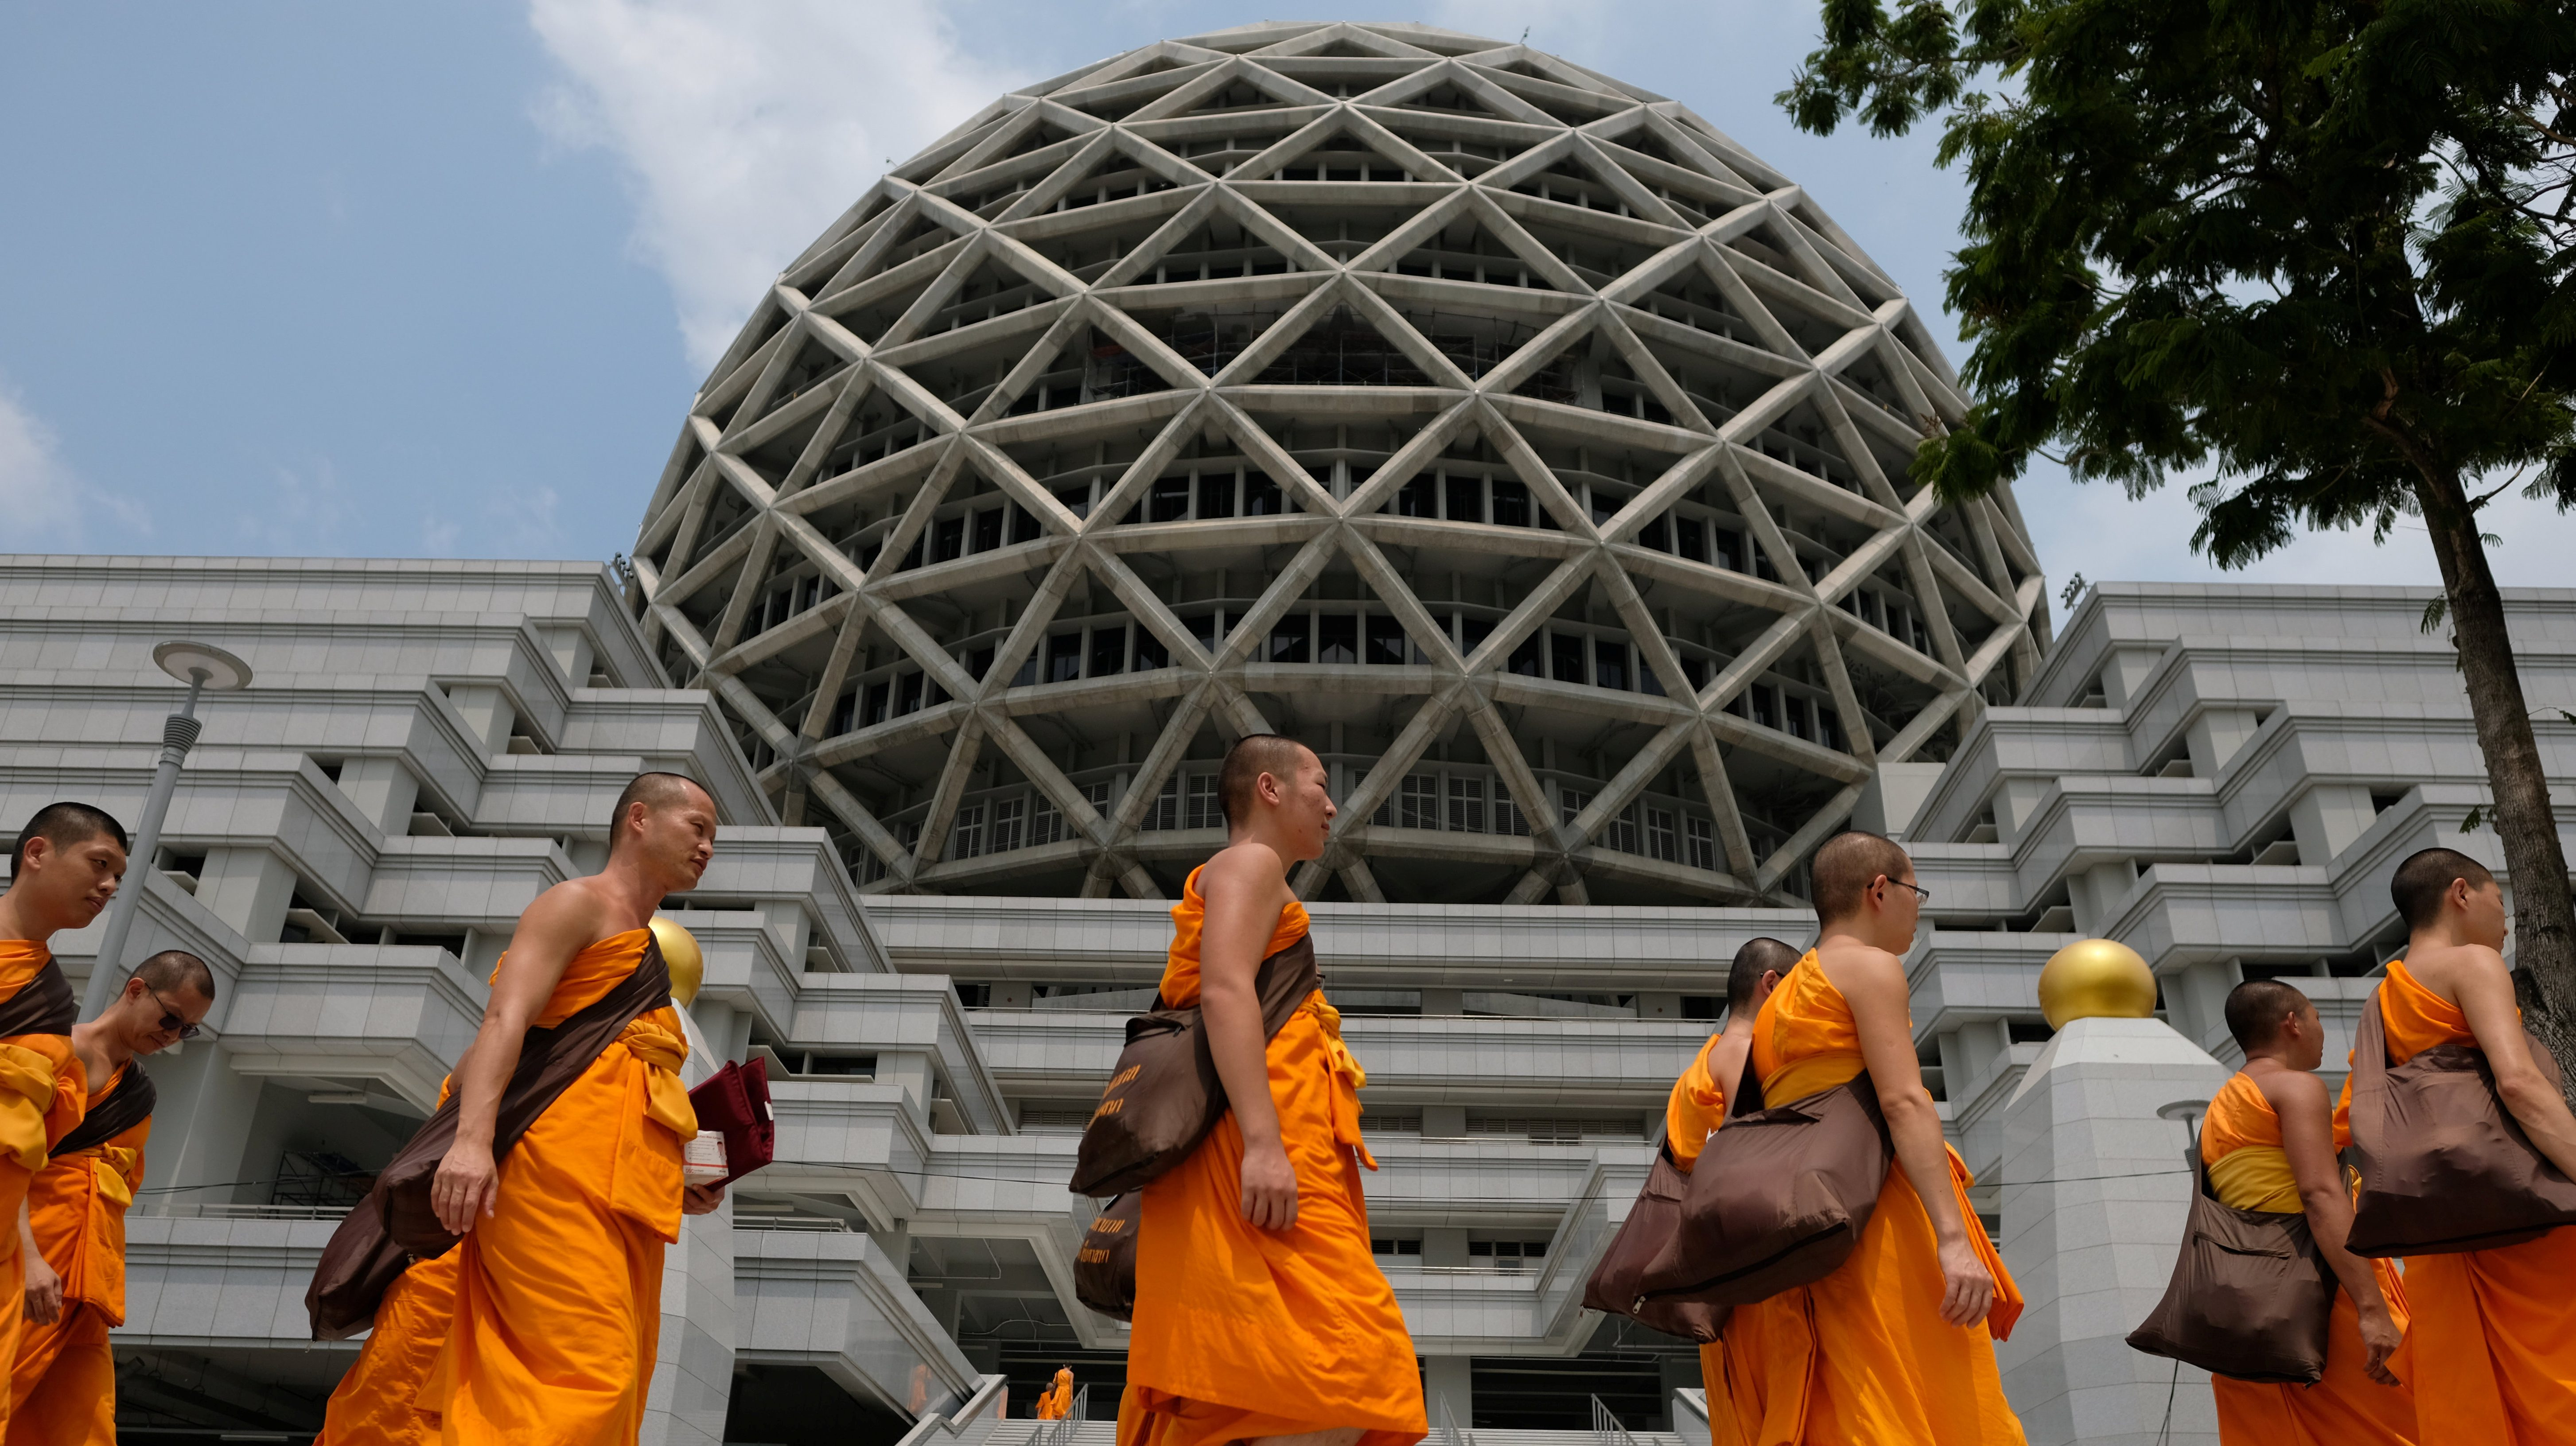 Buddhist Monks from Dhammakaya temple walk past a building inside Dhammakaya temple in Pathum Thani province, Thailand, March 9, 2017. Picture taken March 9, 2017. REUTERS/Athit Perawongmetha